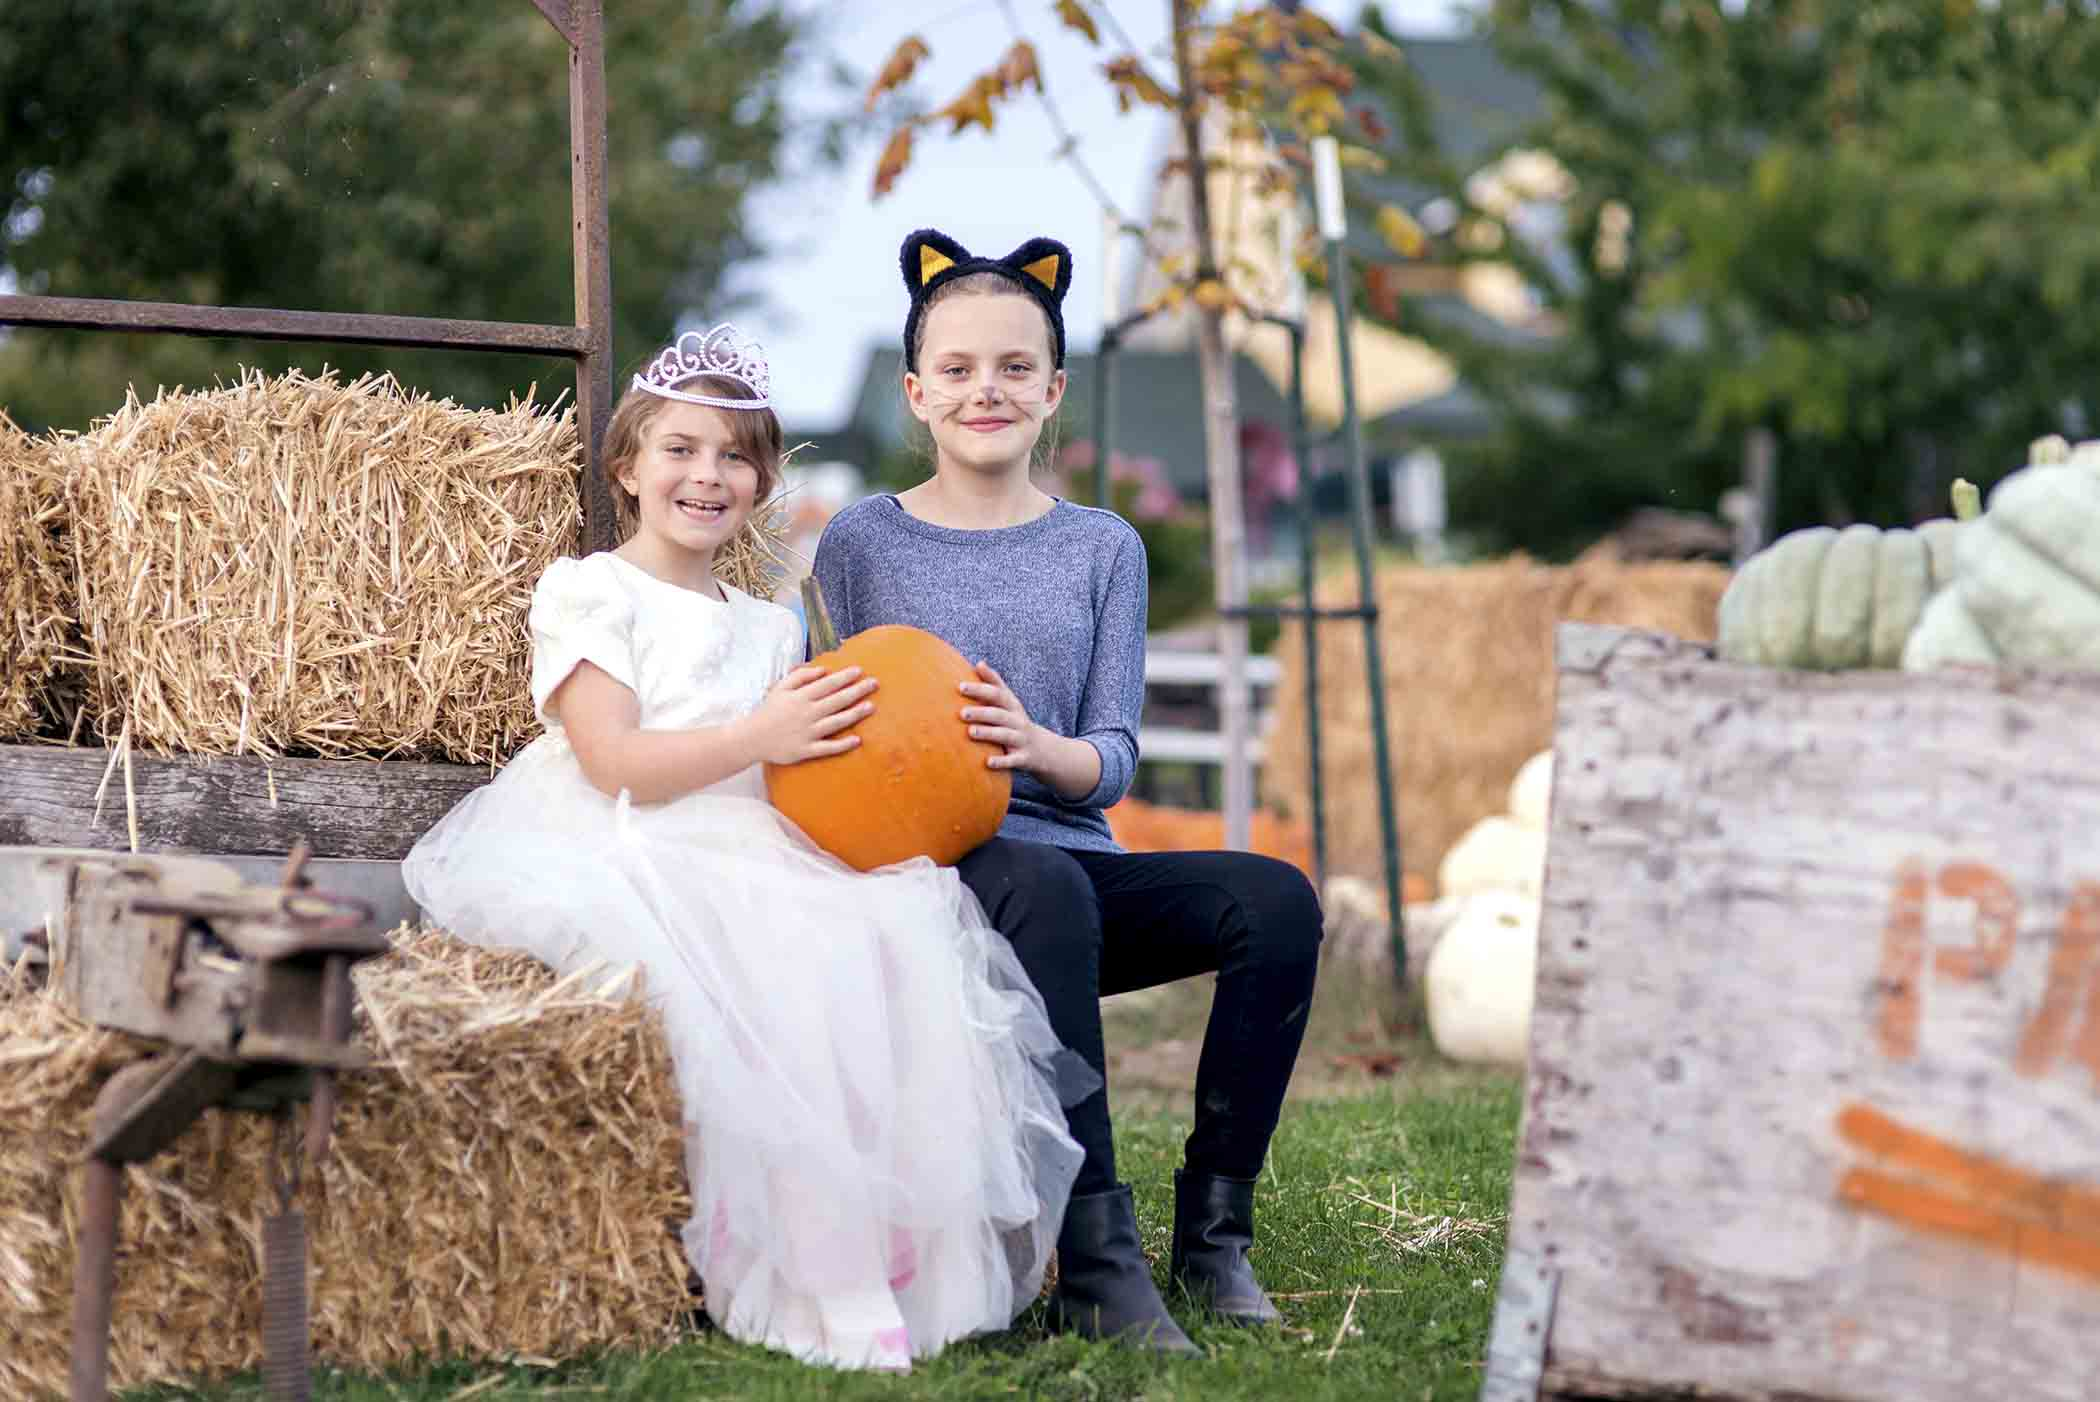 Two girls at the pumpkin patch